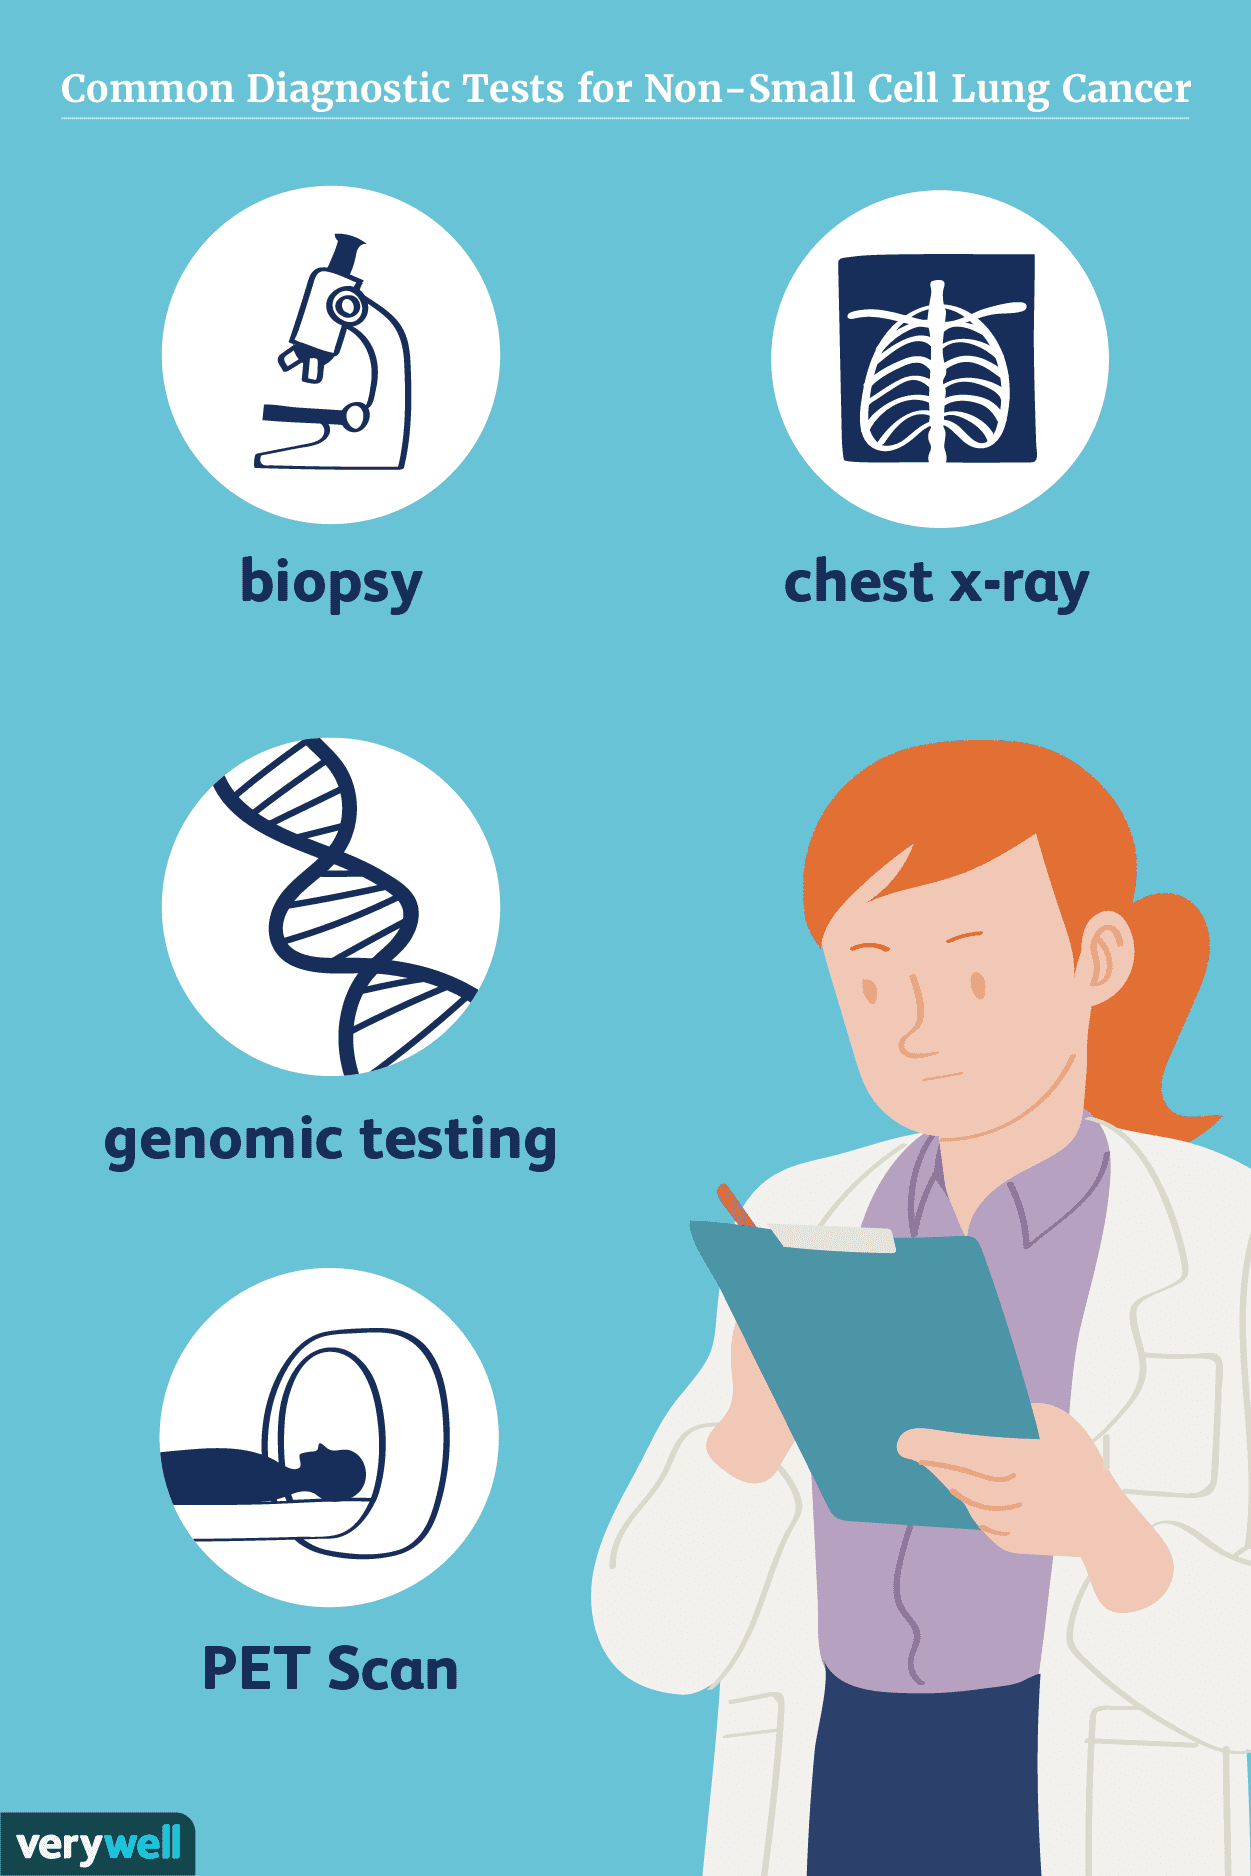 Common diagnostic tests for non-small cell lung cancer